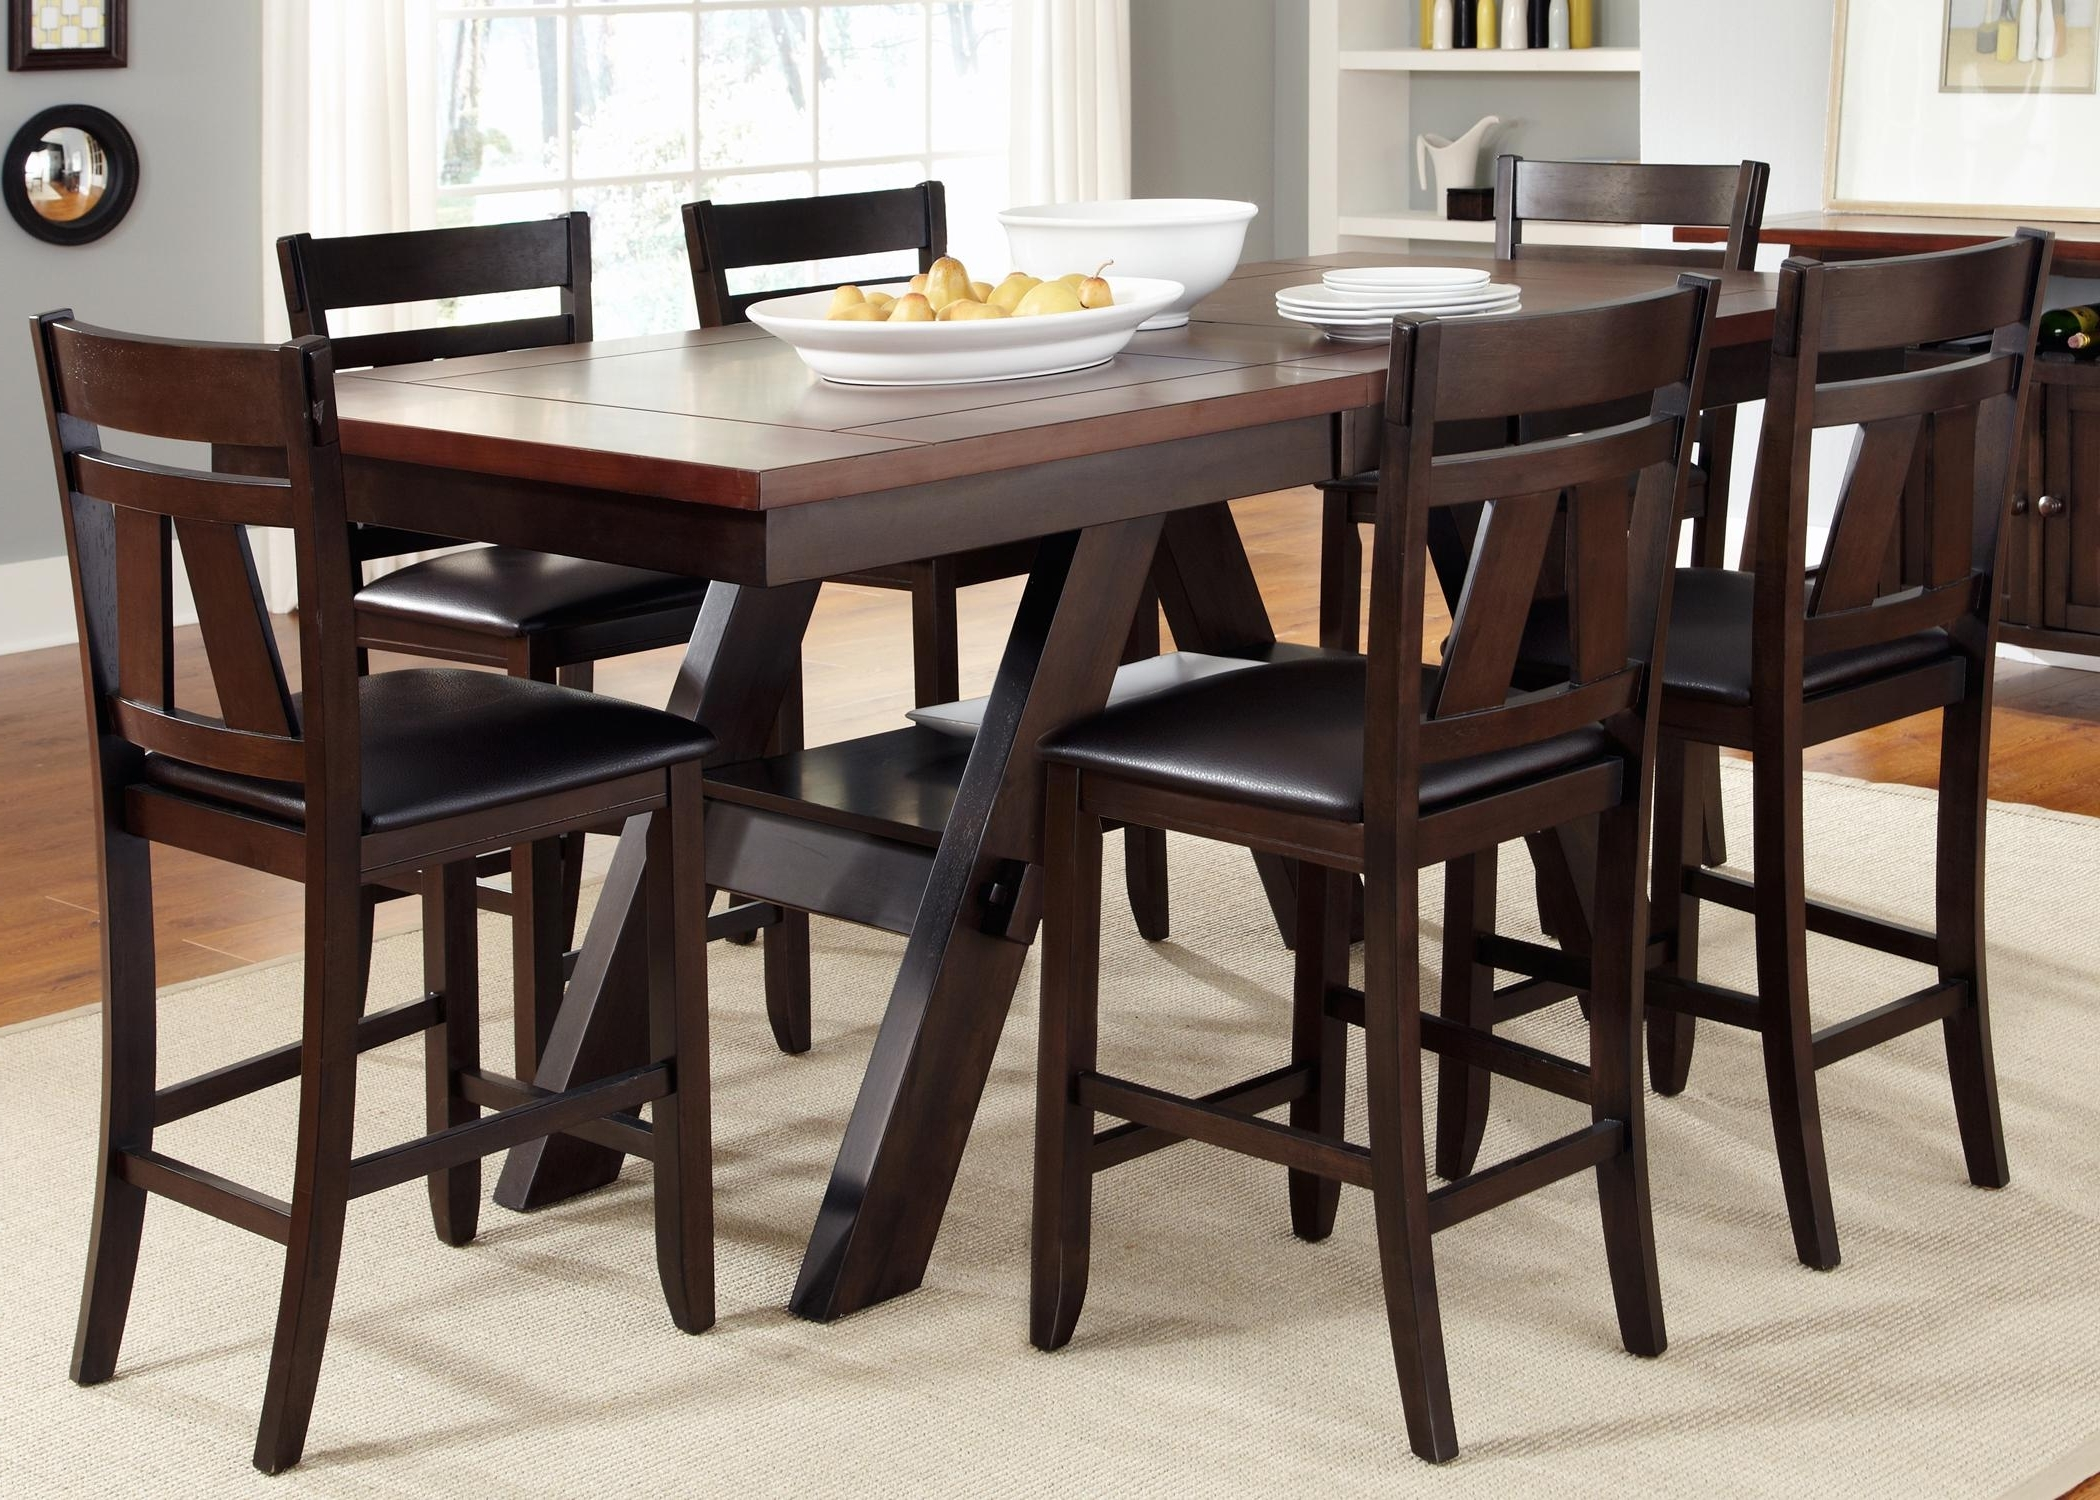 Trendy Parquet 7 Piece Dining Sets In 7 Piece Trestle Gathering Table With Counter Height Chairs Set (View 17 of 25)